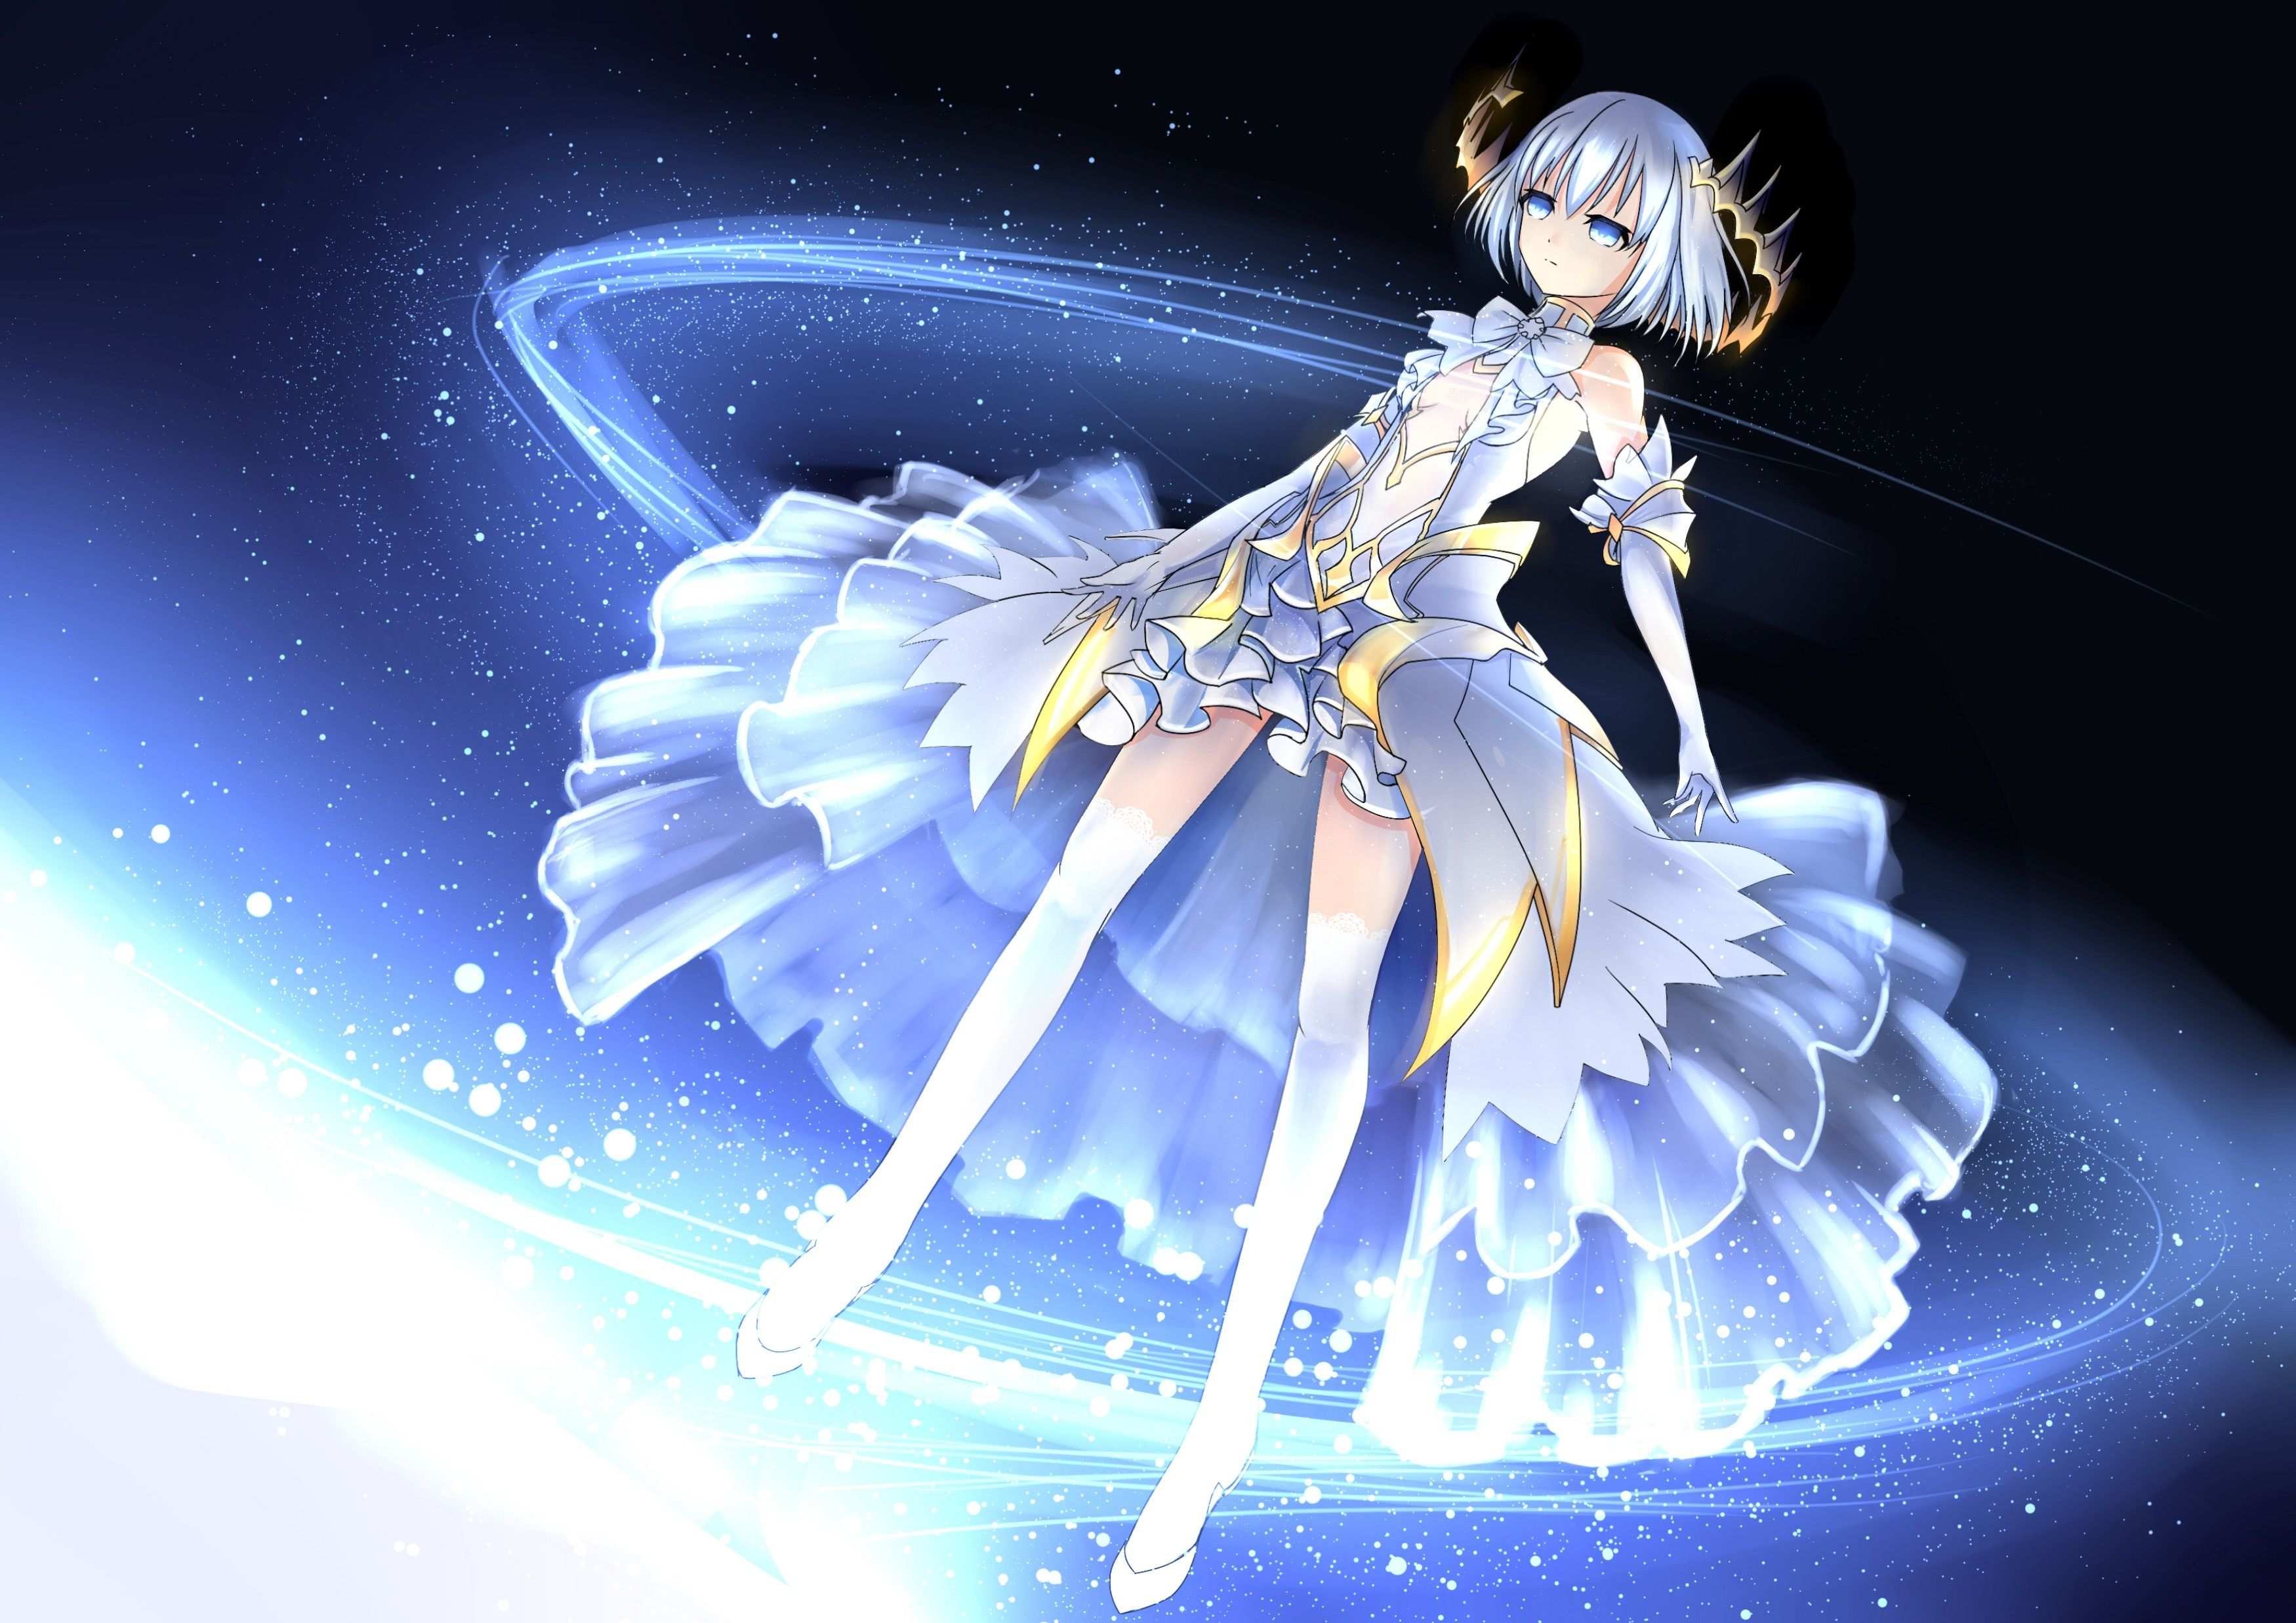 date a live Part 1 YoIDEF/100 Anime, Quỷ, Tỏi